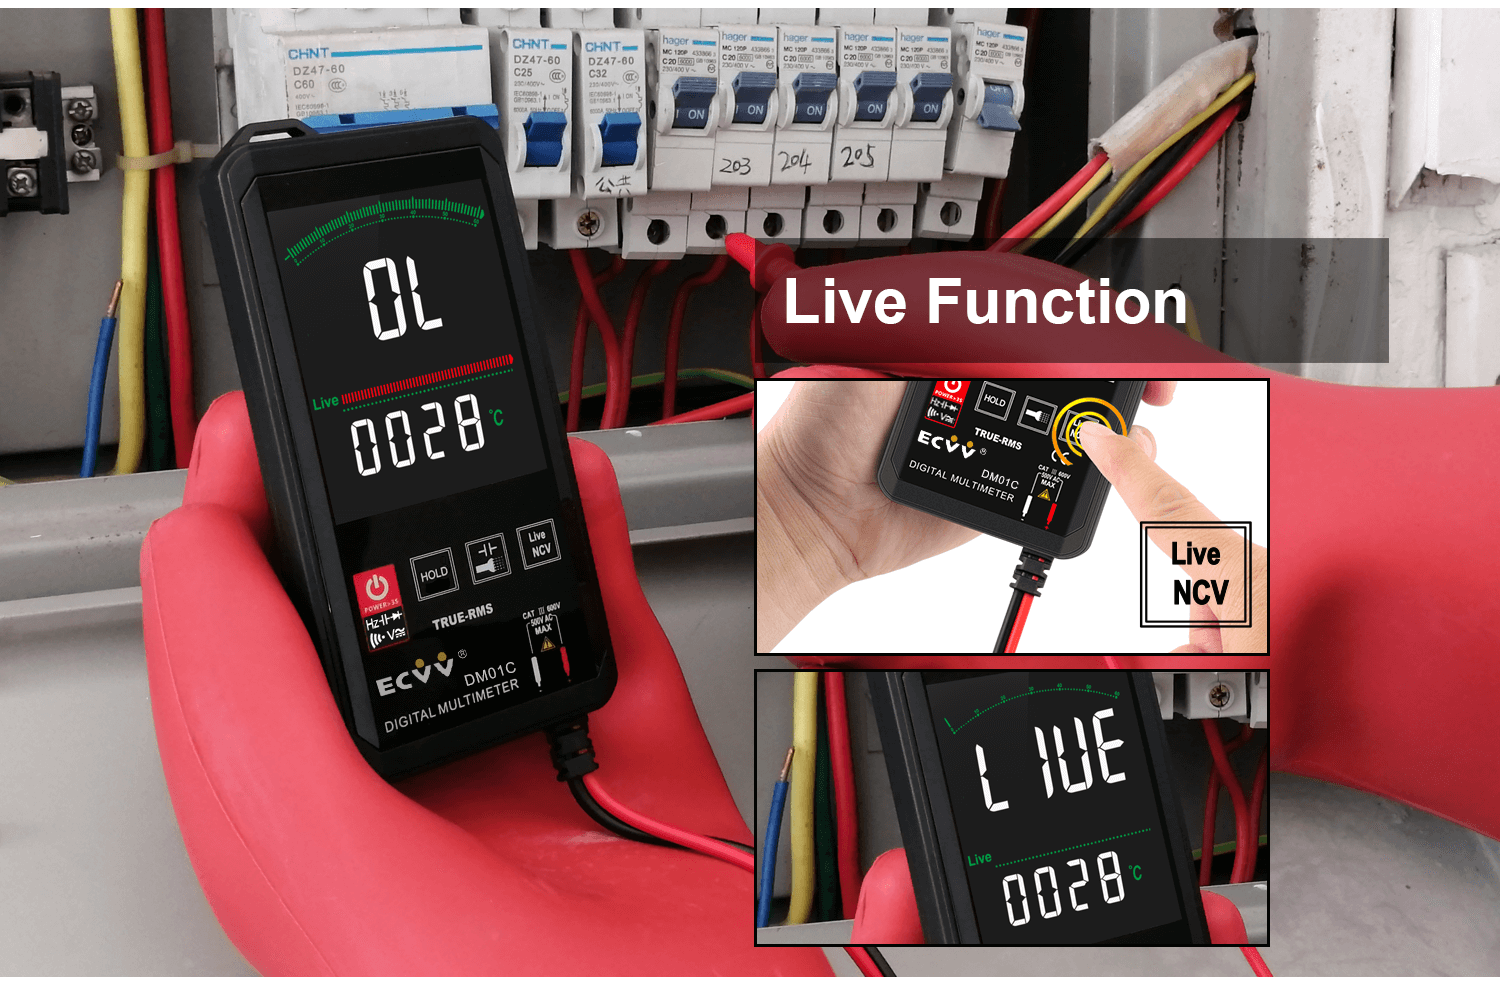 ECVV Touch Screen Digital Multimeter Color Display Auto Recognition-8